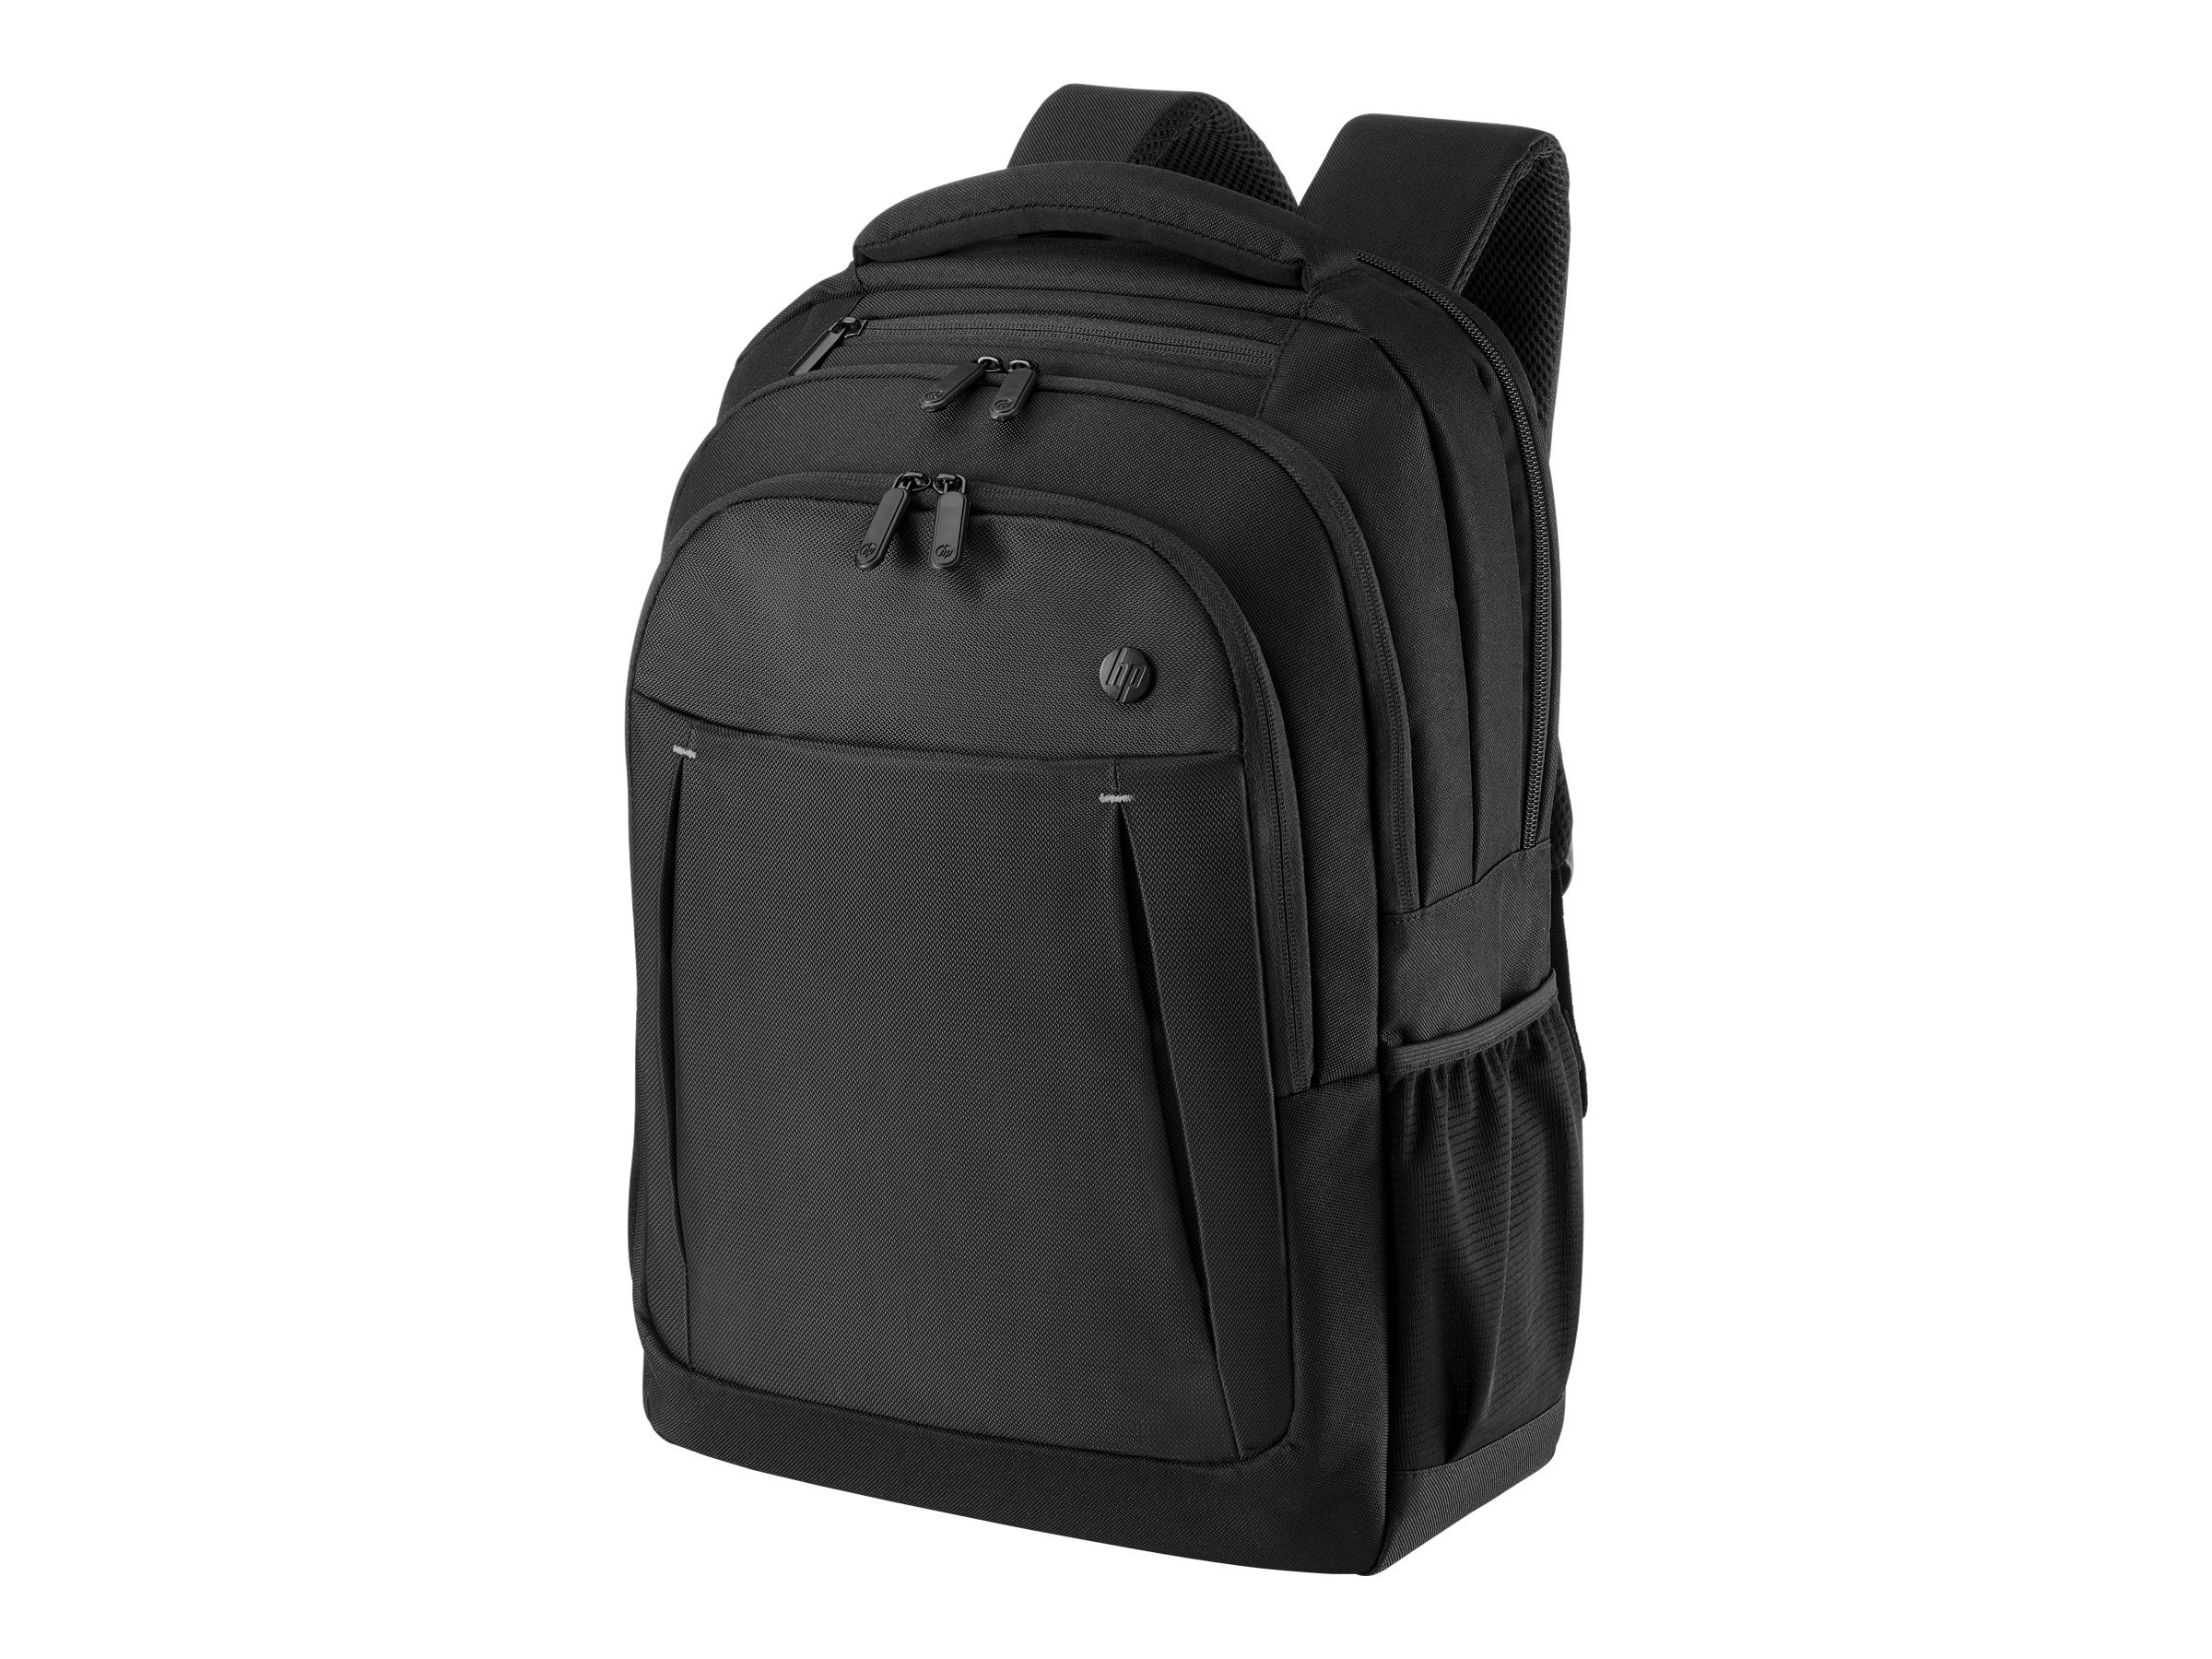 HP Business Backpack Notebook Carrying